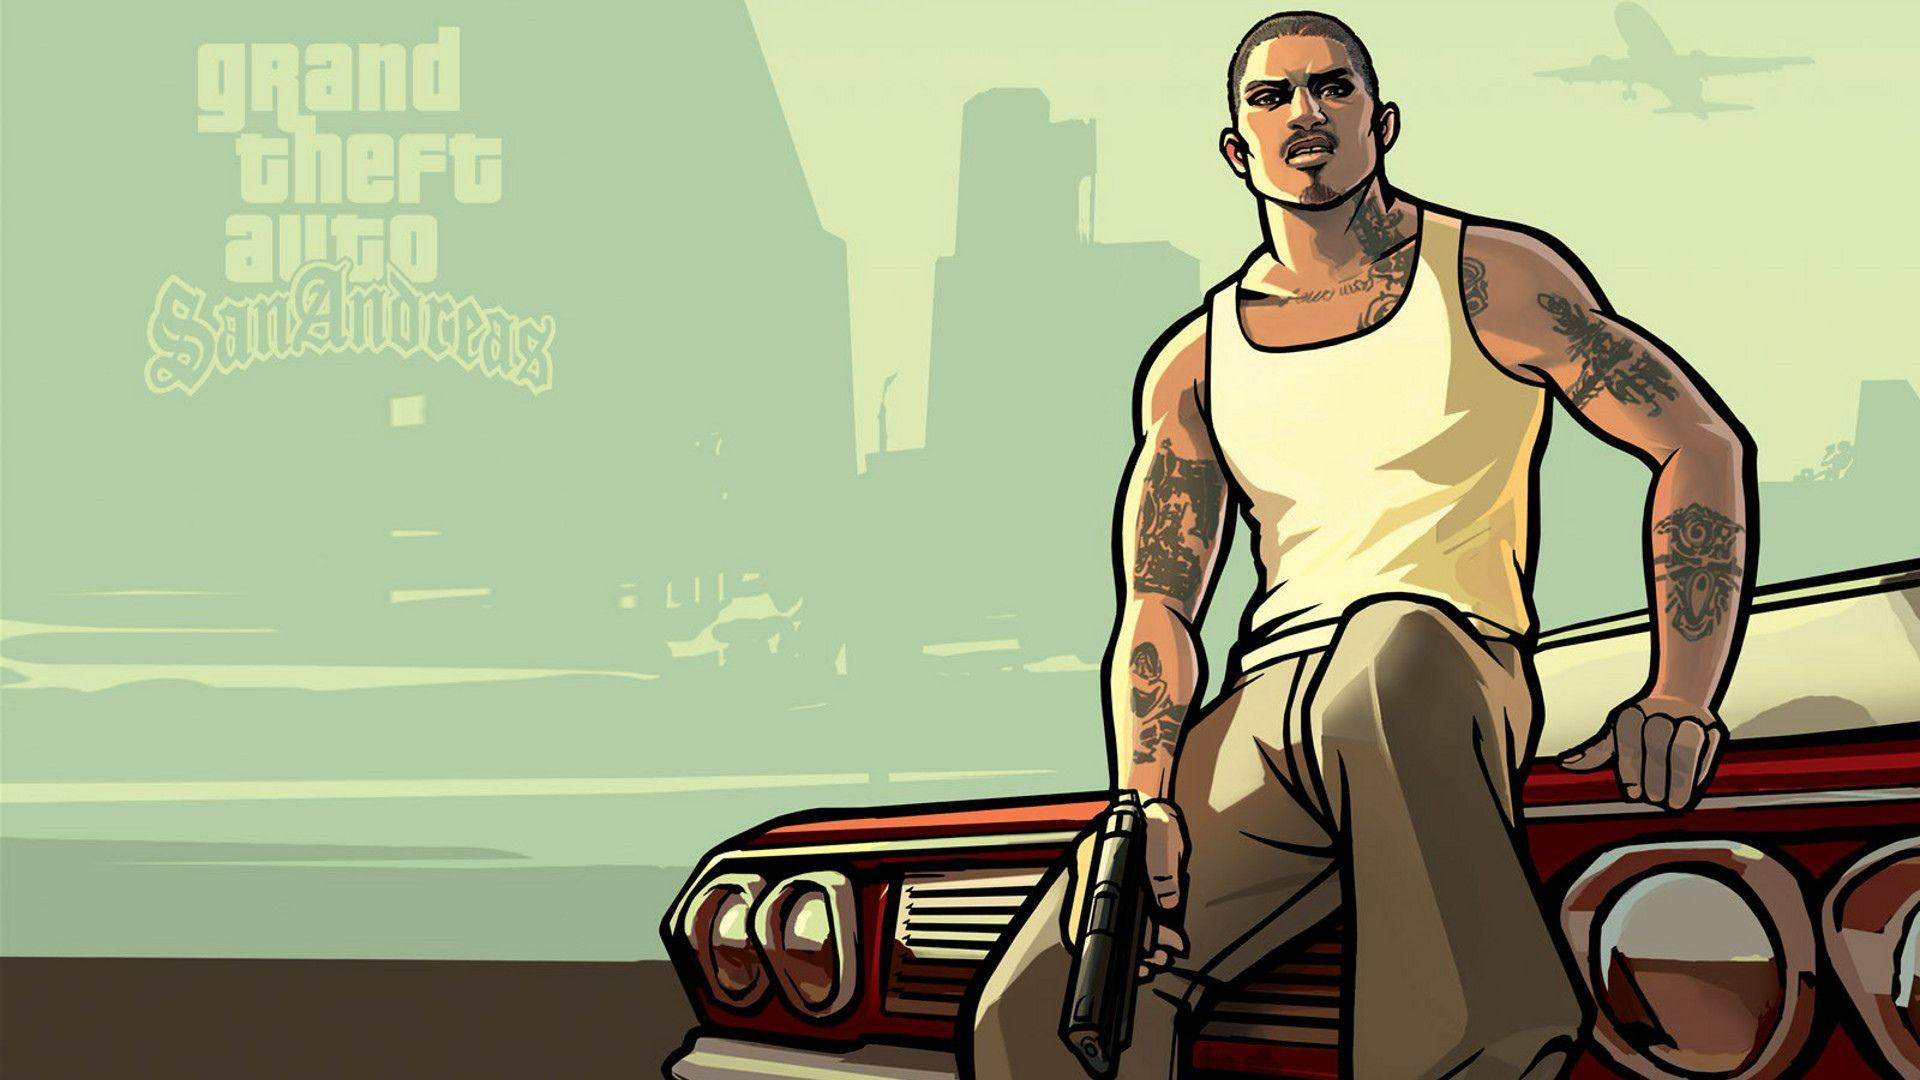 Grand Theft Auto: San Andreas Full HD Wallpapers and Backgrounds